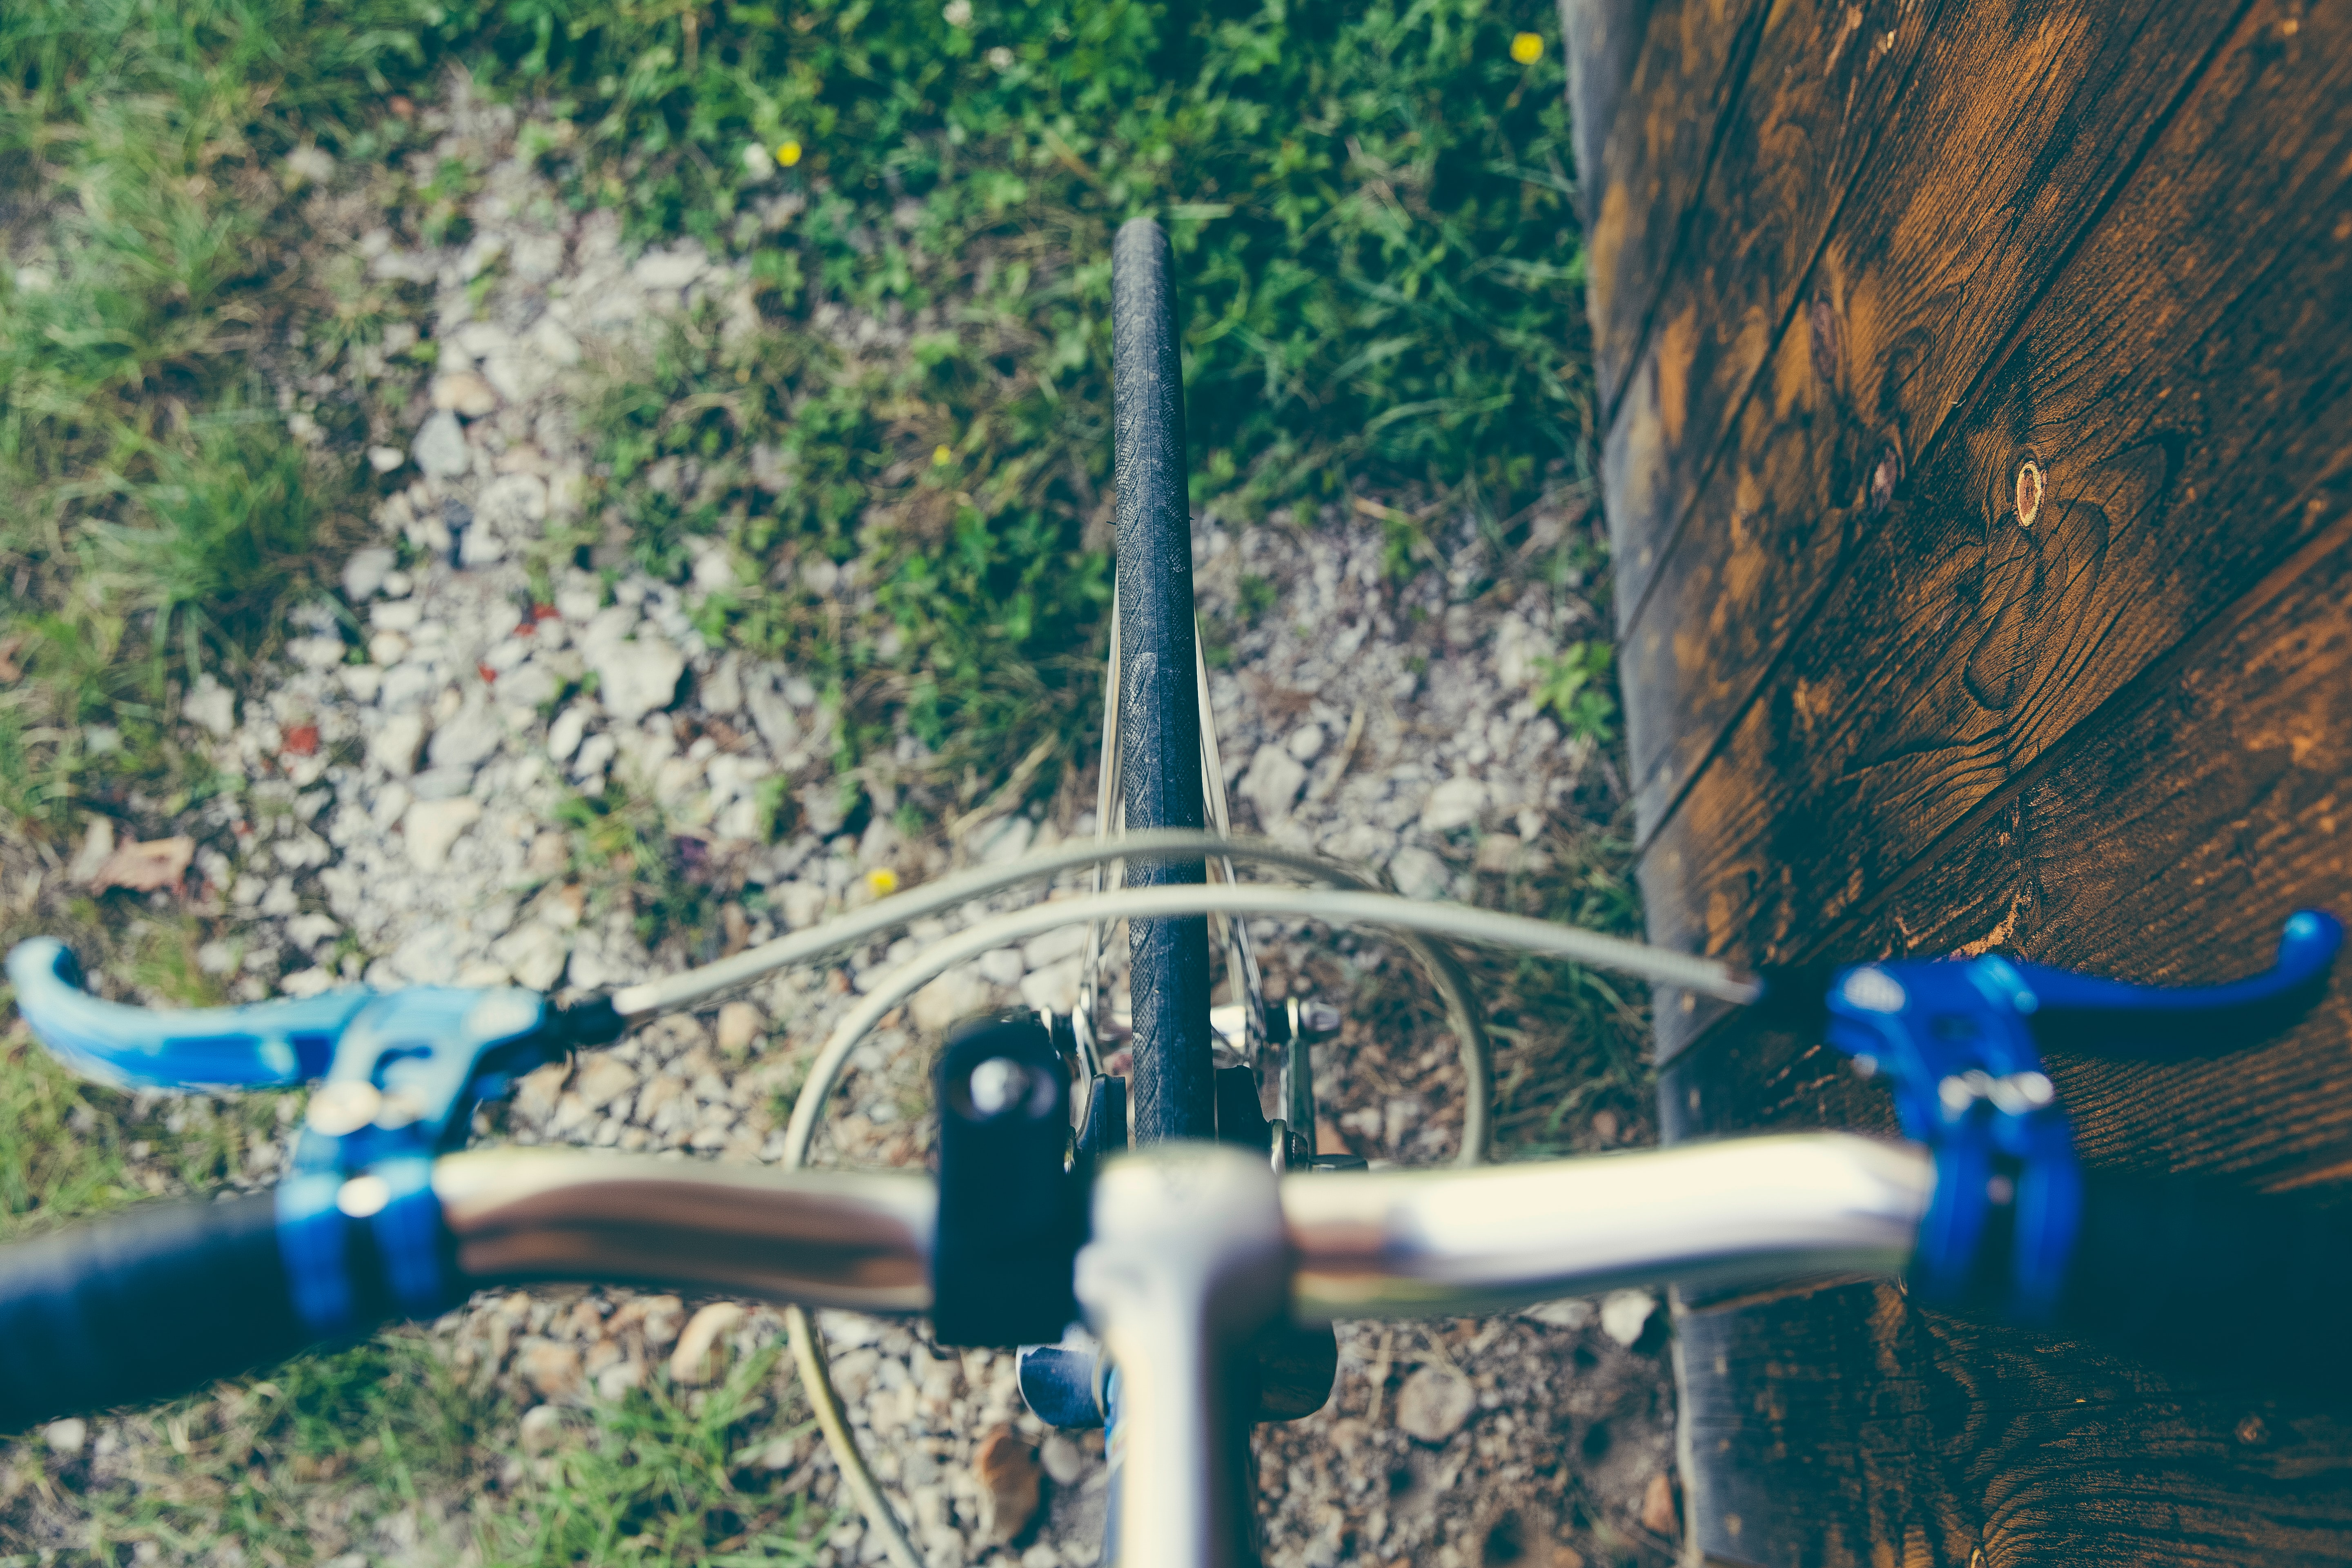 Drone view of bicycle handlebars and brakes on gravel and grass near a wall